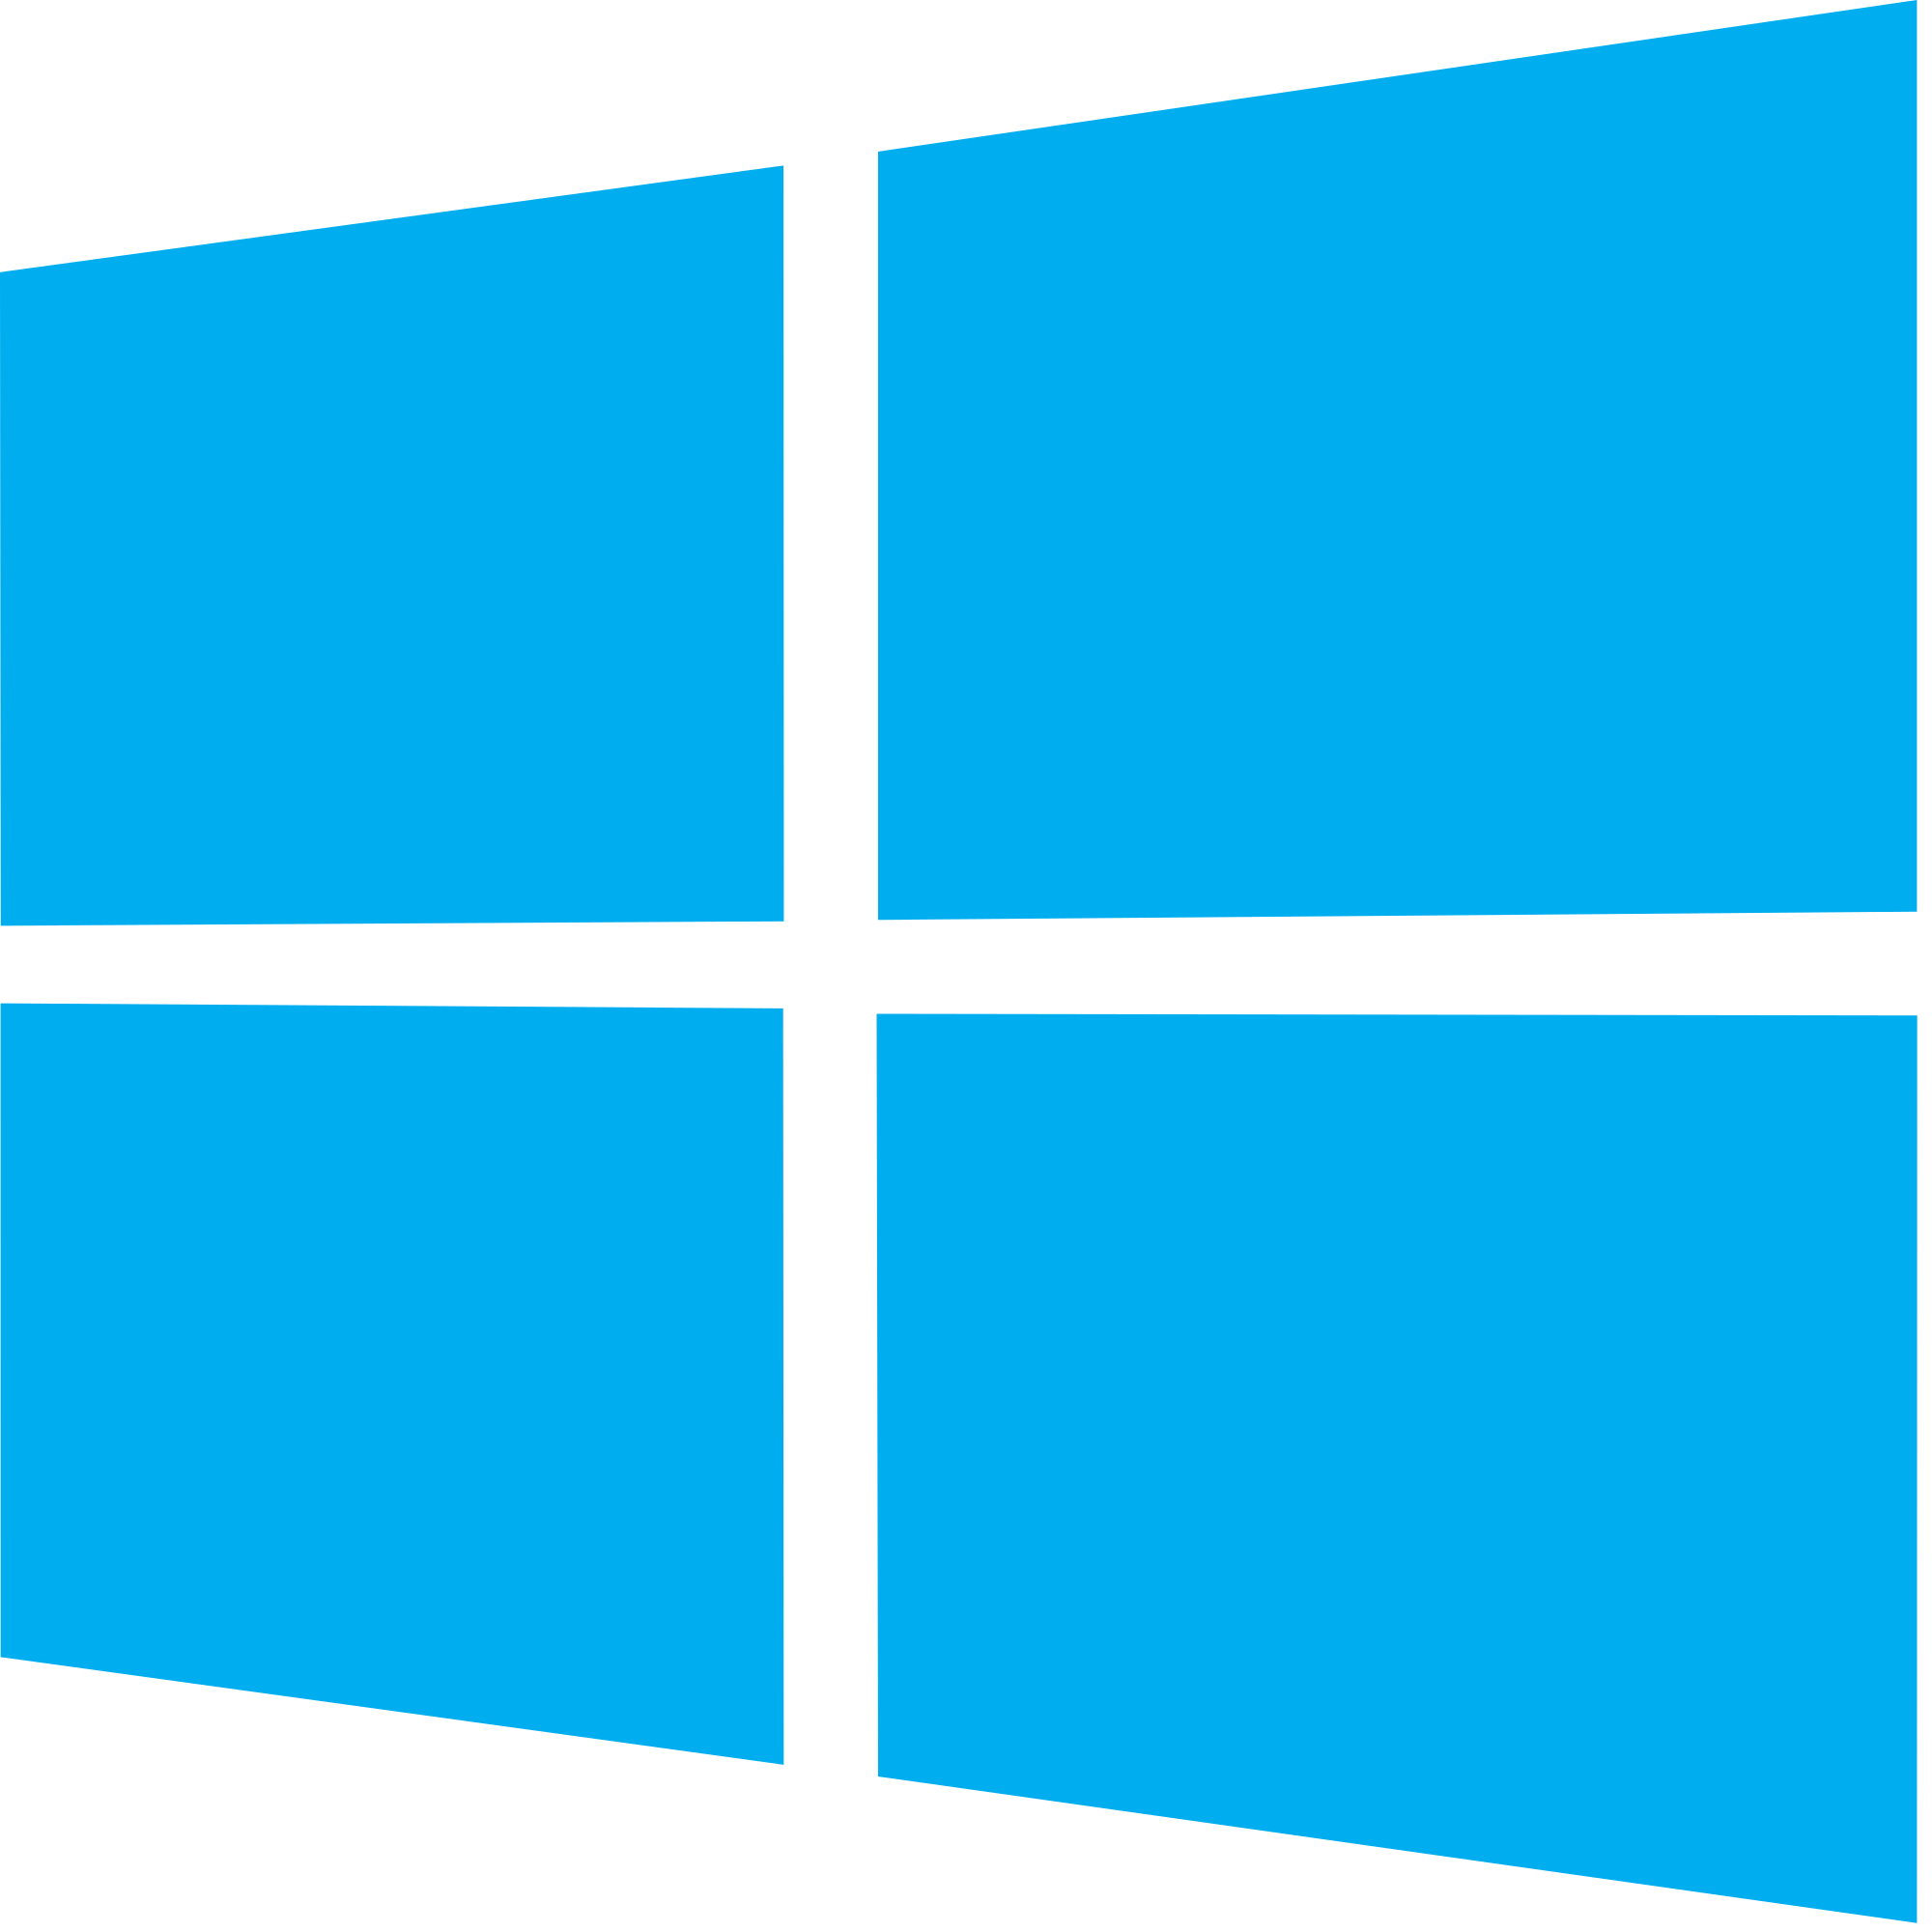 Png windows background. Logo